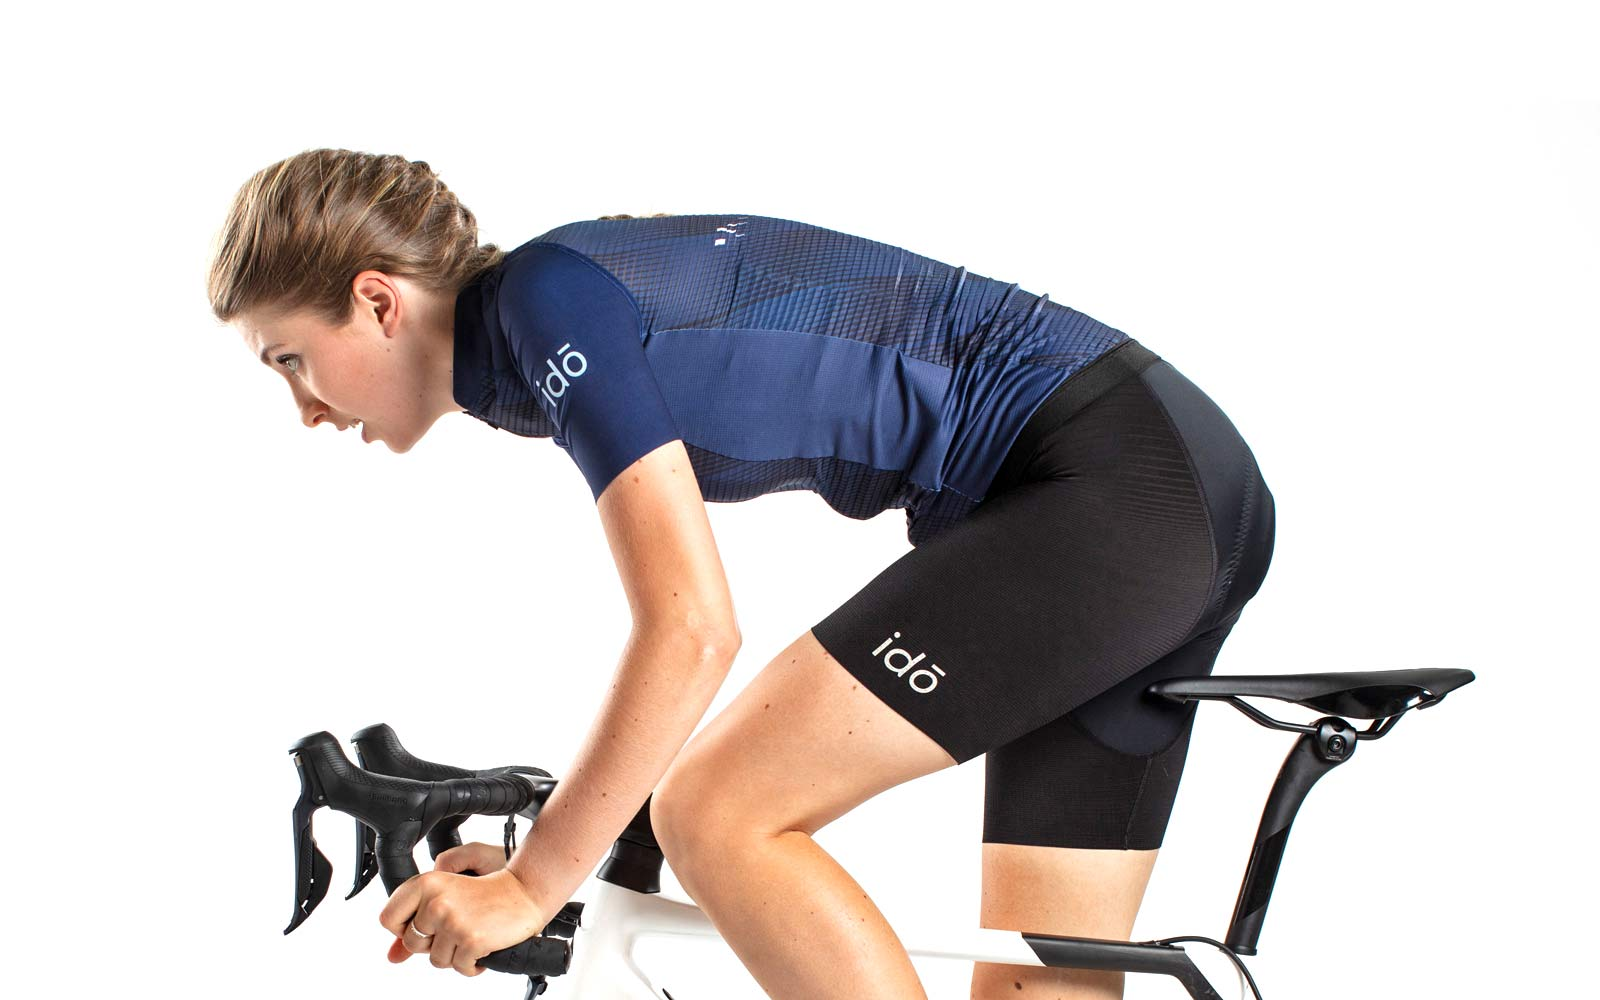 Idō debuts indoor-specific cycling clothing, tailored for training & racing inside